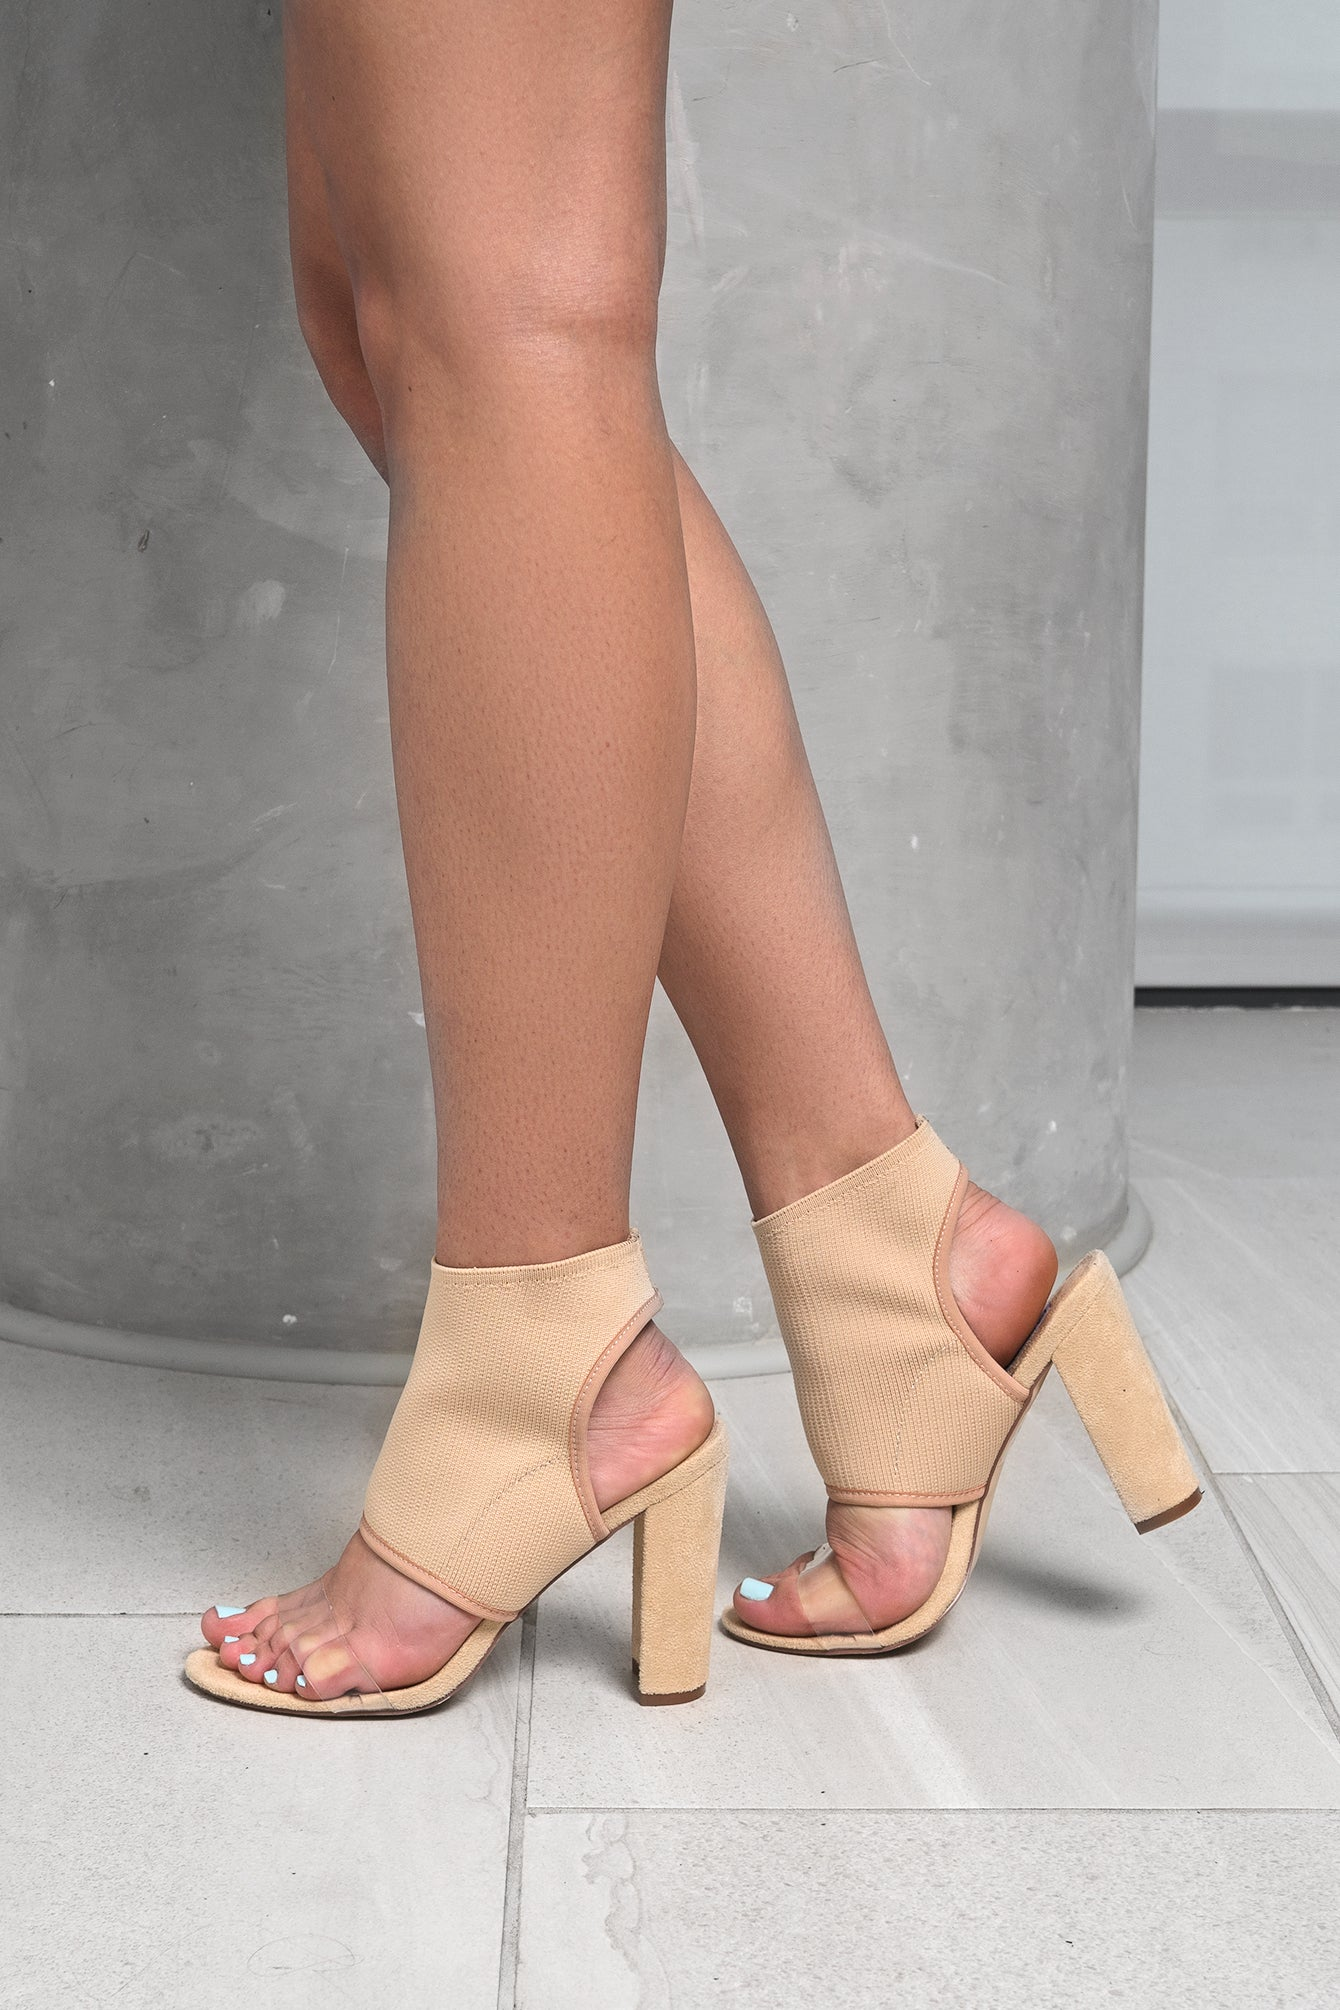 Clear Strap Nude Ankle Knit Sock High Heels